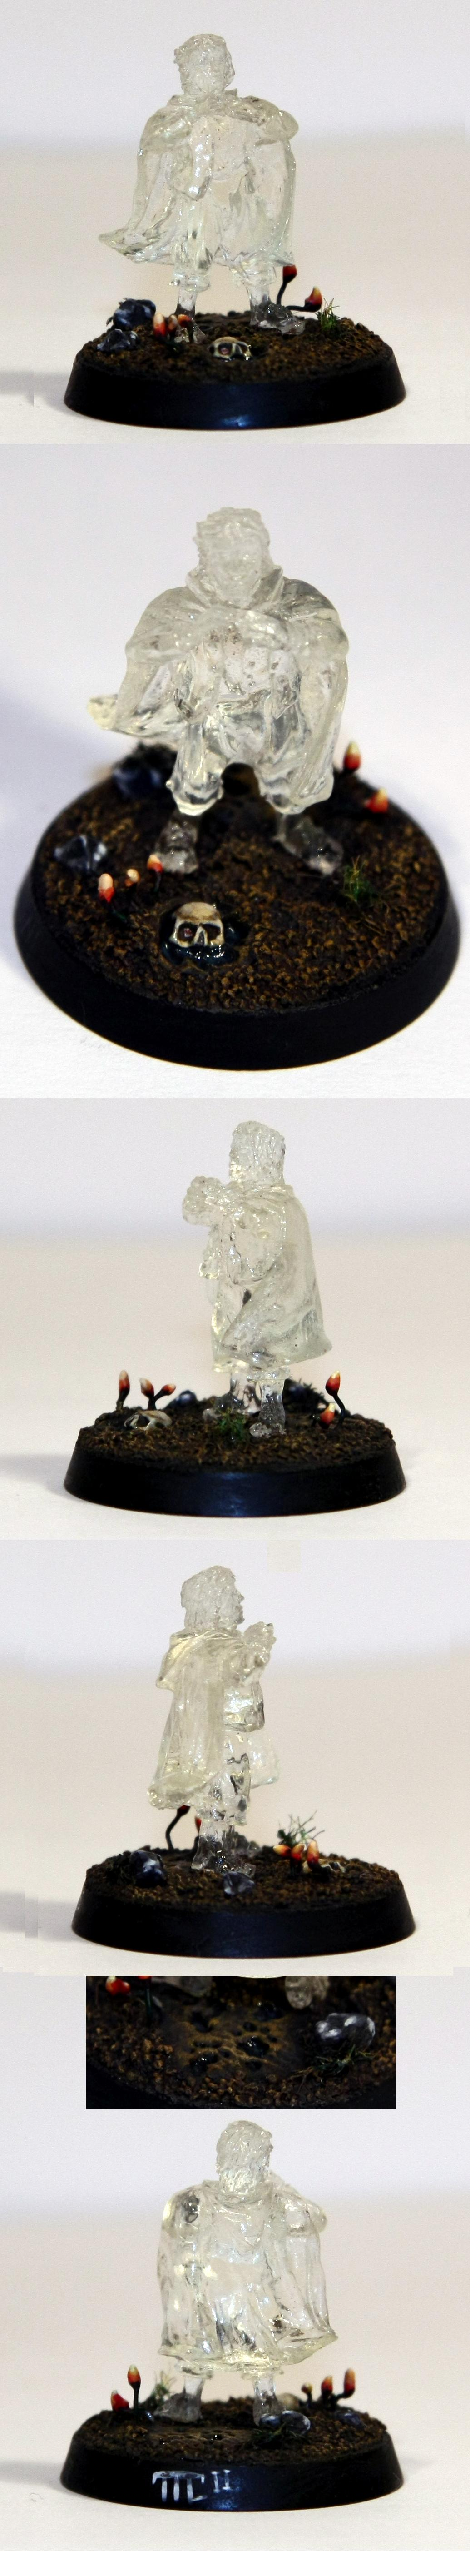 Frodo, Invisible, Invisible Frodo, Limited Edition, Lord Of The Rings, Pr27